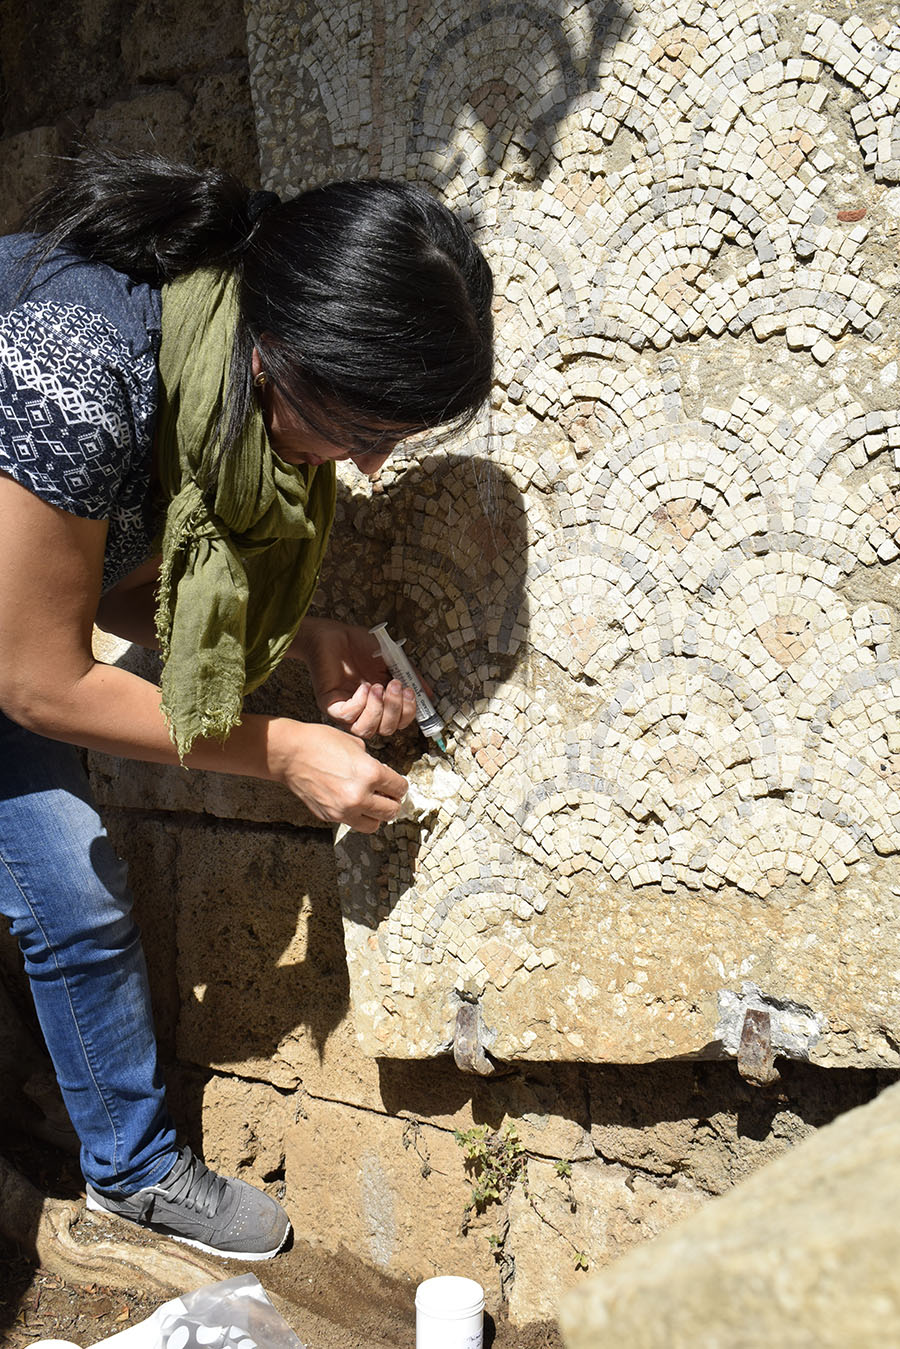 A woman uses a syringe to inject material into a mosaic with a scallop pattern that hangs on a wall.